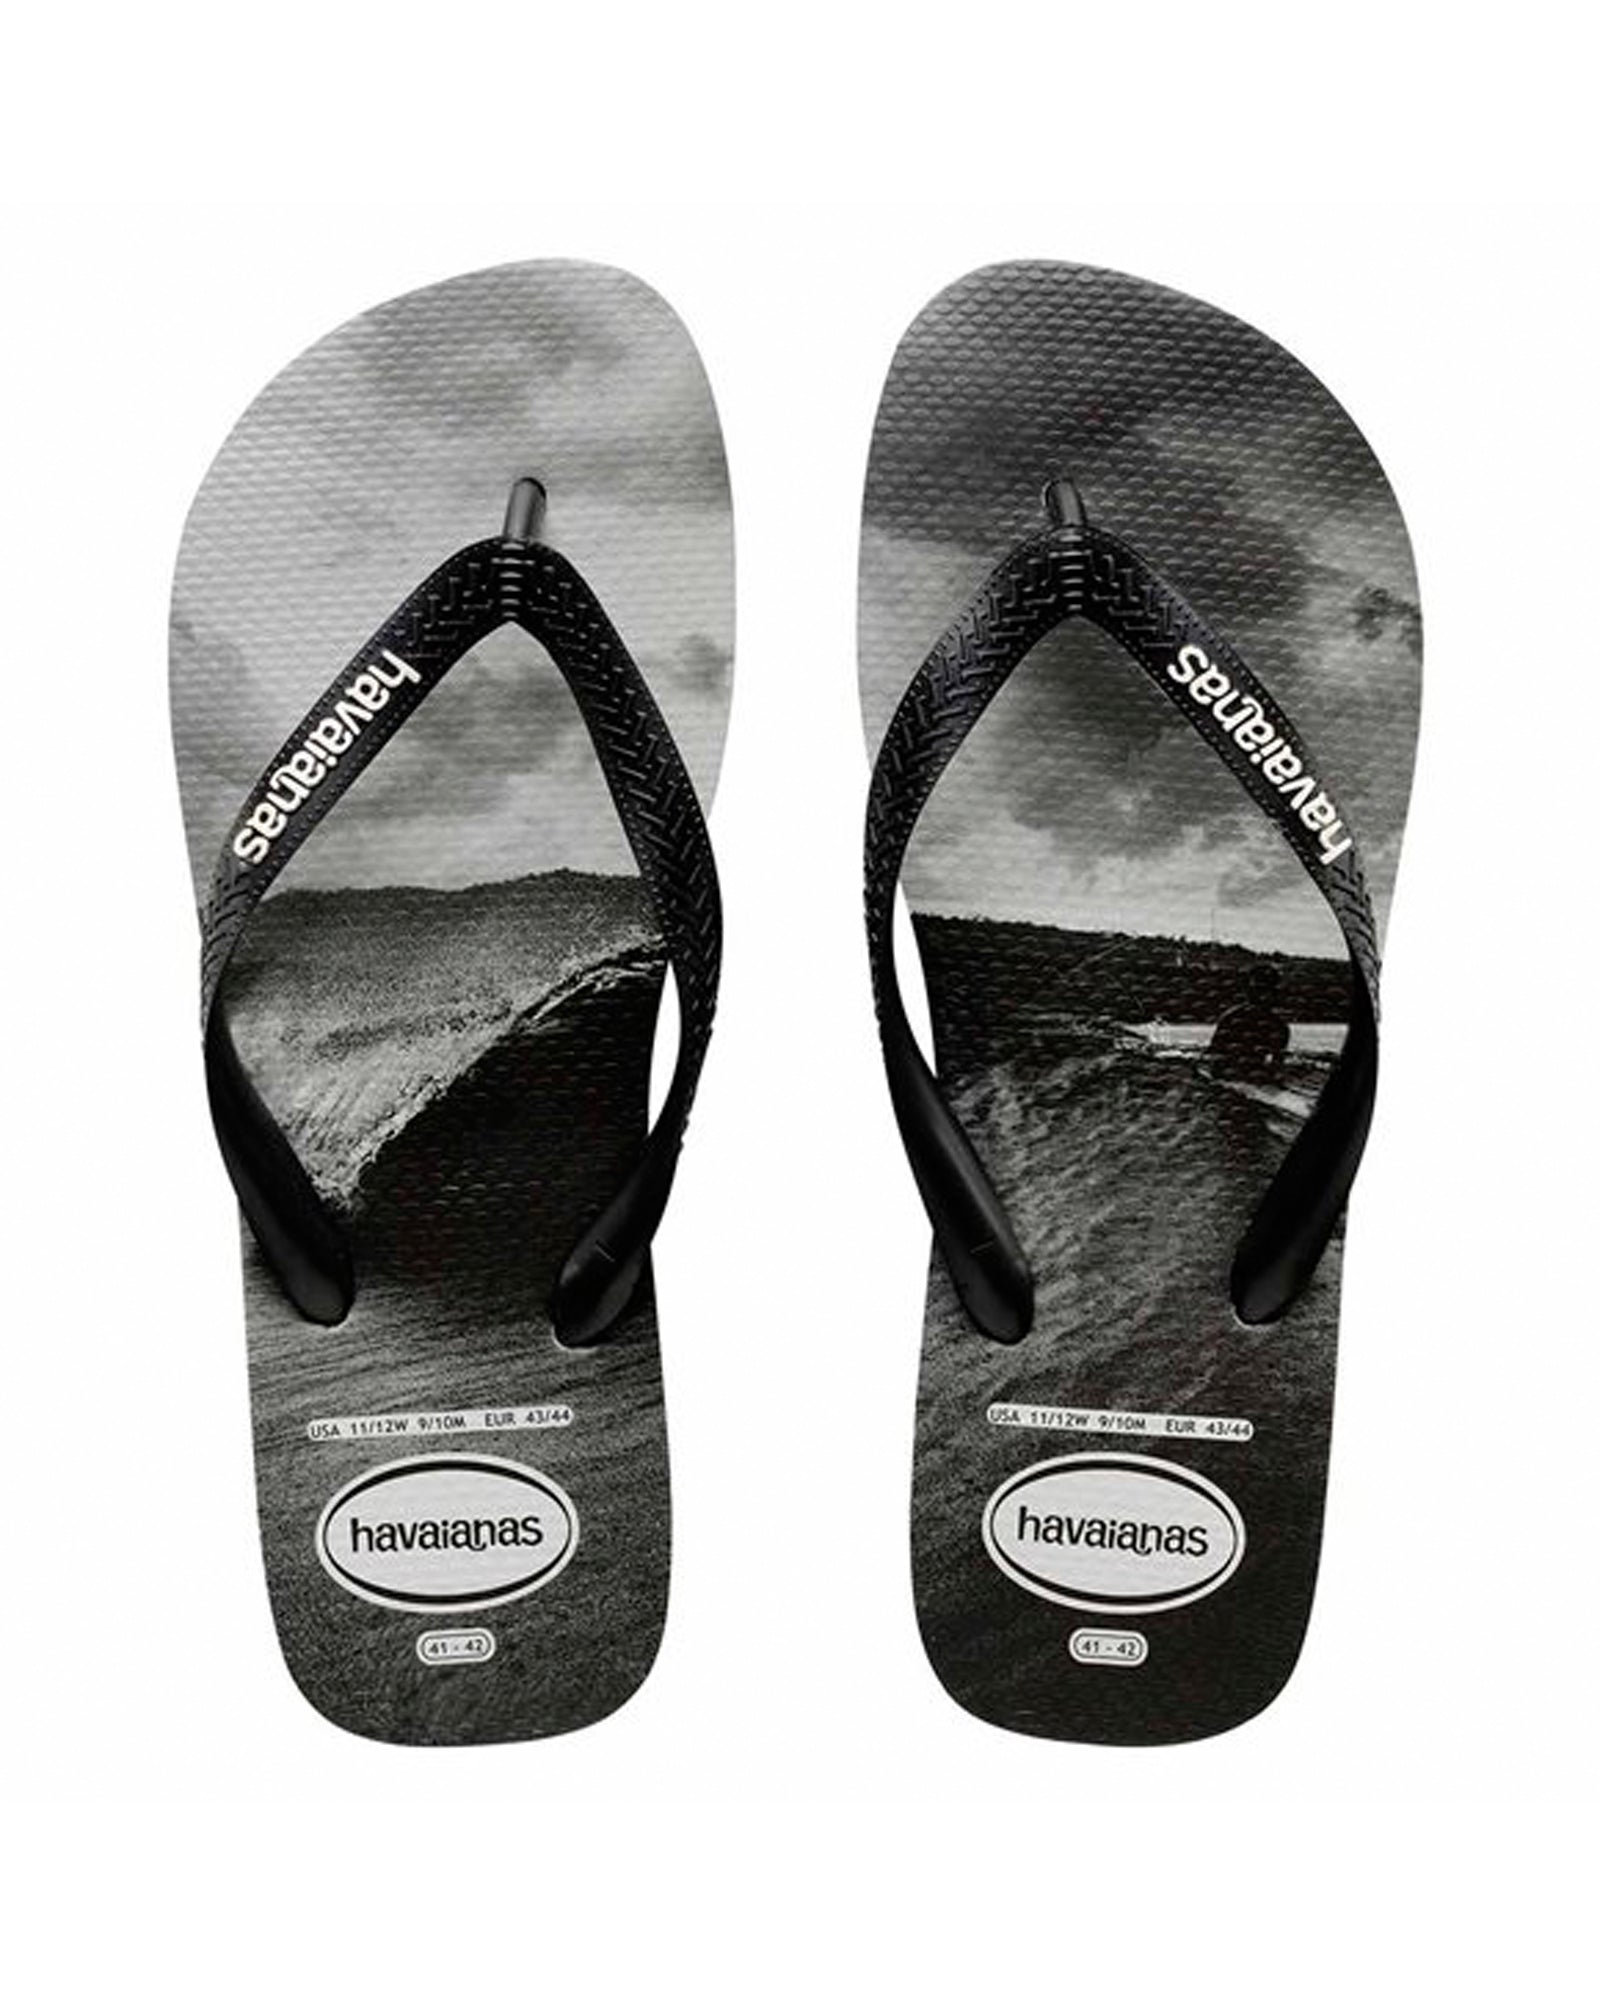 Havaianas Photoprint Mentawais Thong - Black/White